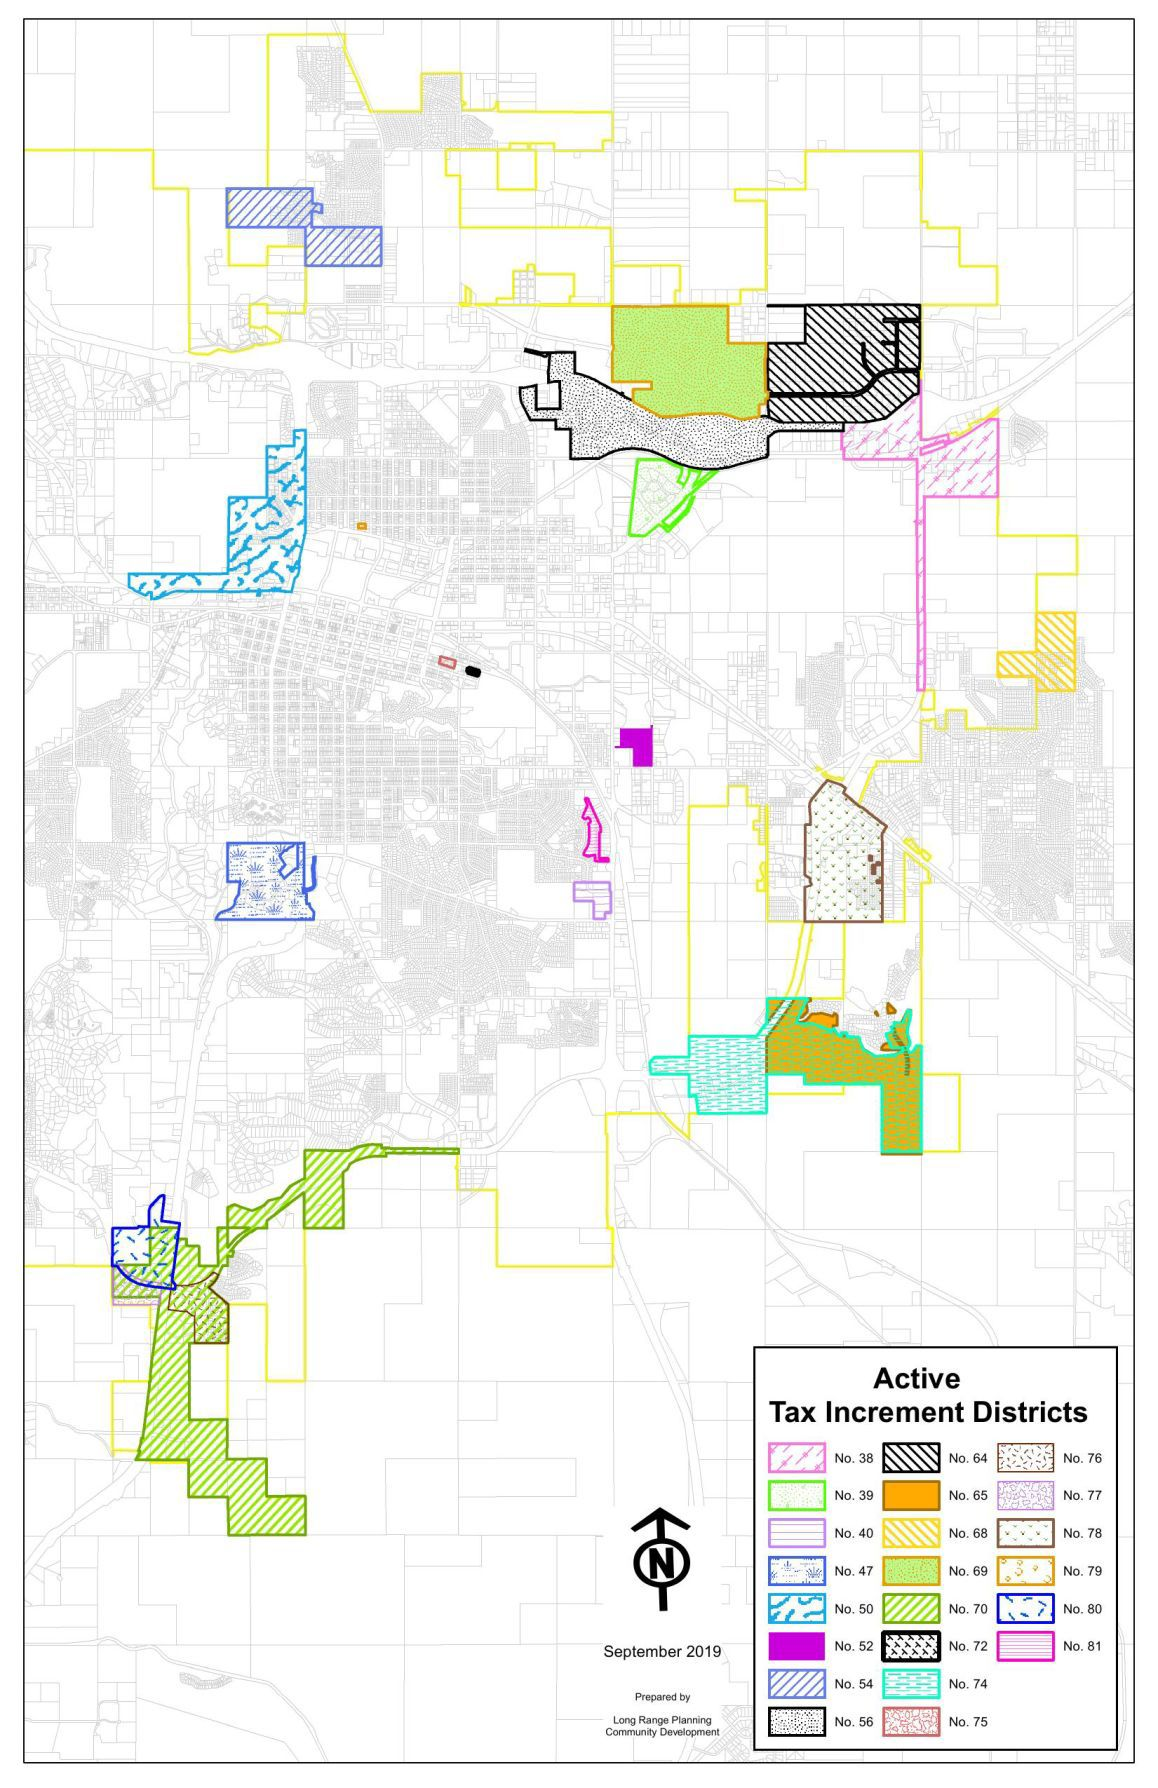 Active Tax Increment Districts in Rapid City as of September 2019